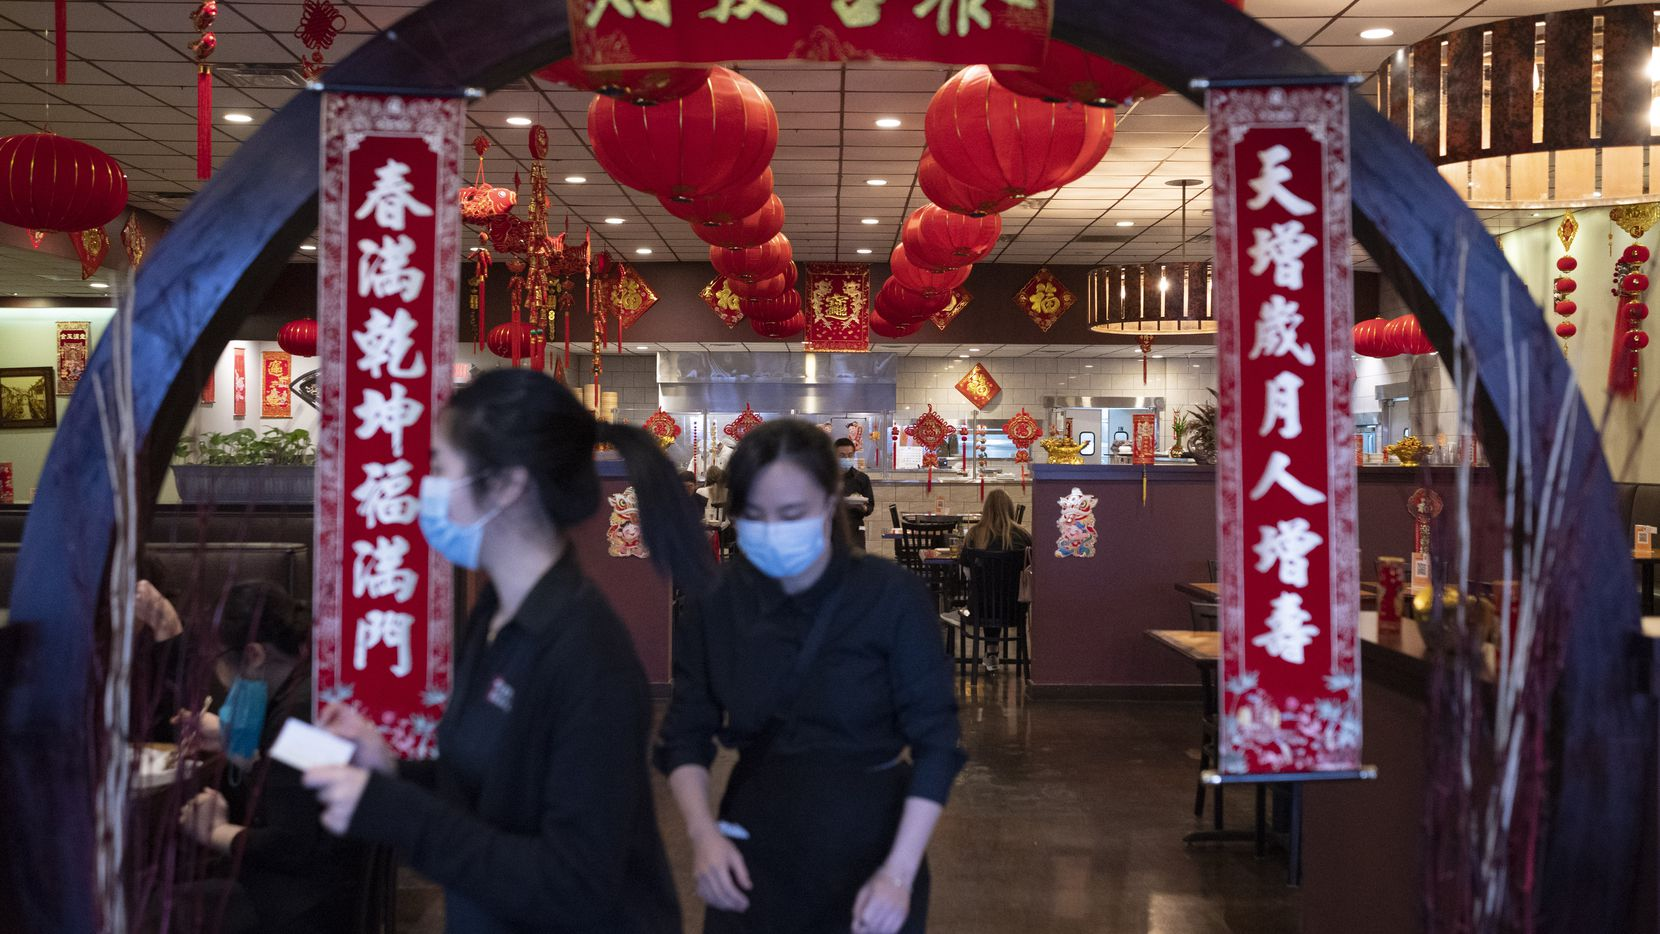 Employees wearing face masks walk towards the front to cater to customers inside Jeng Chi restaurant in Richardson during the COVID-19 pandemic, on Friday, Jan. 29, 2021.